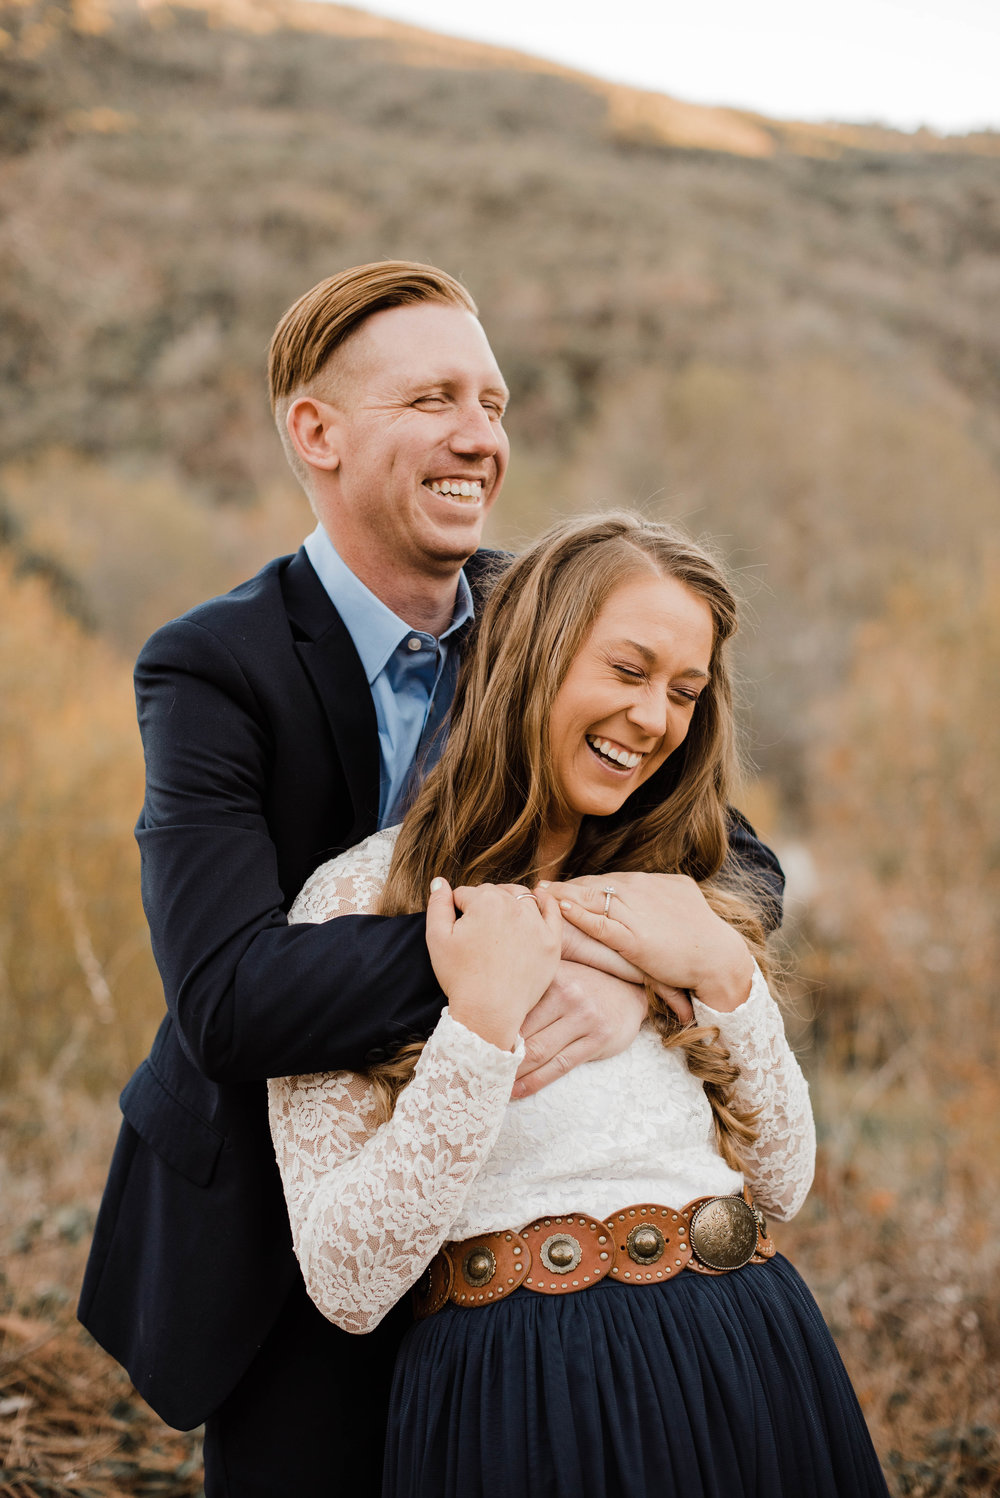 Daniel & Kailey // Thurman Flats